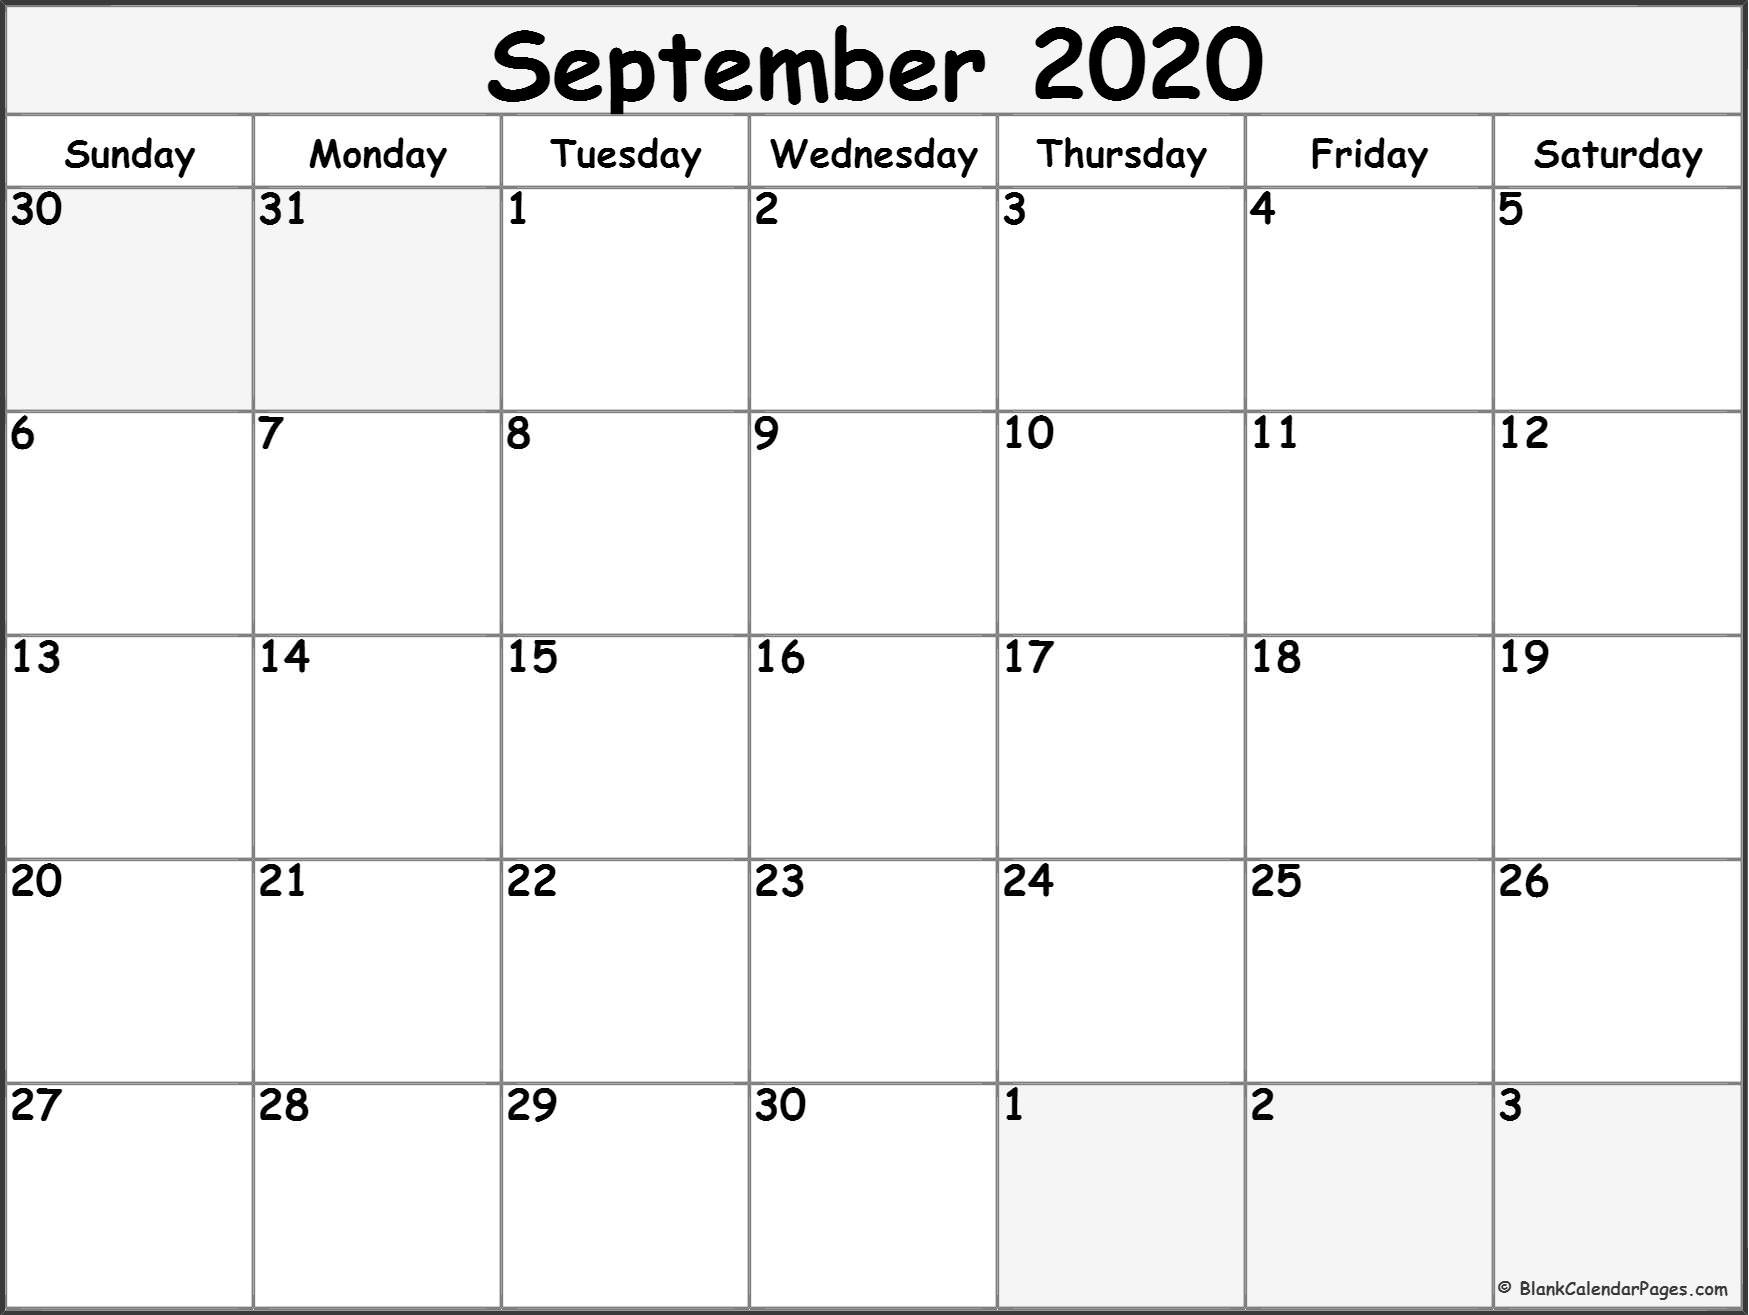 September 2020 Calendar | Free Printable Monthly Calendars  Full Page September 2020 Calender Page